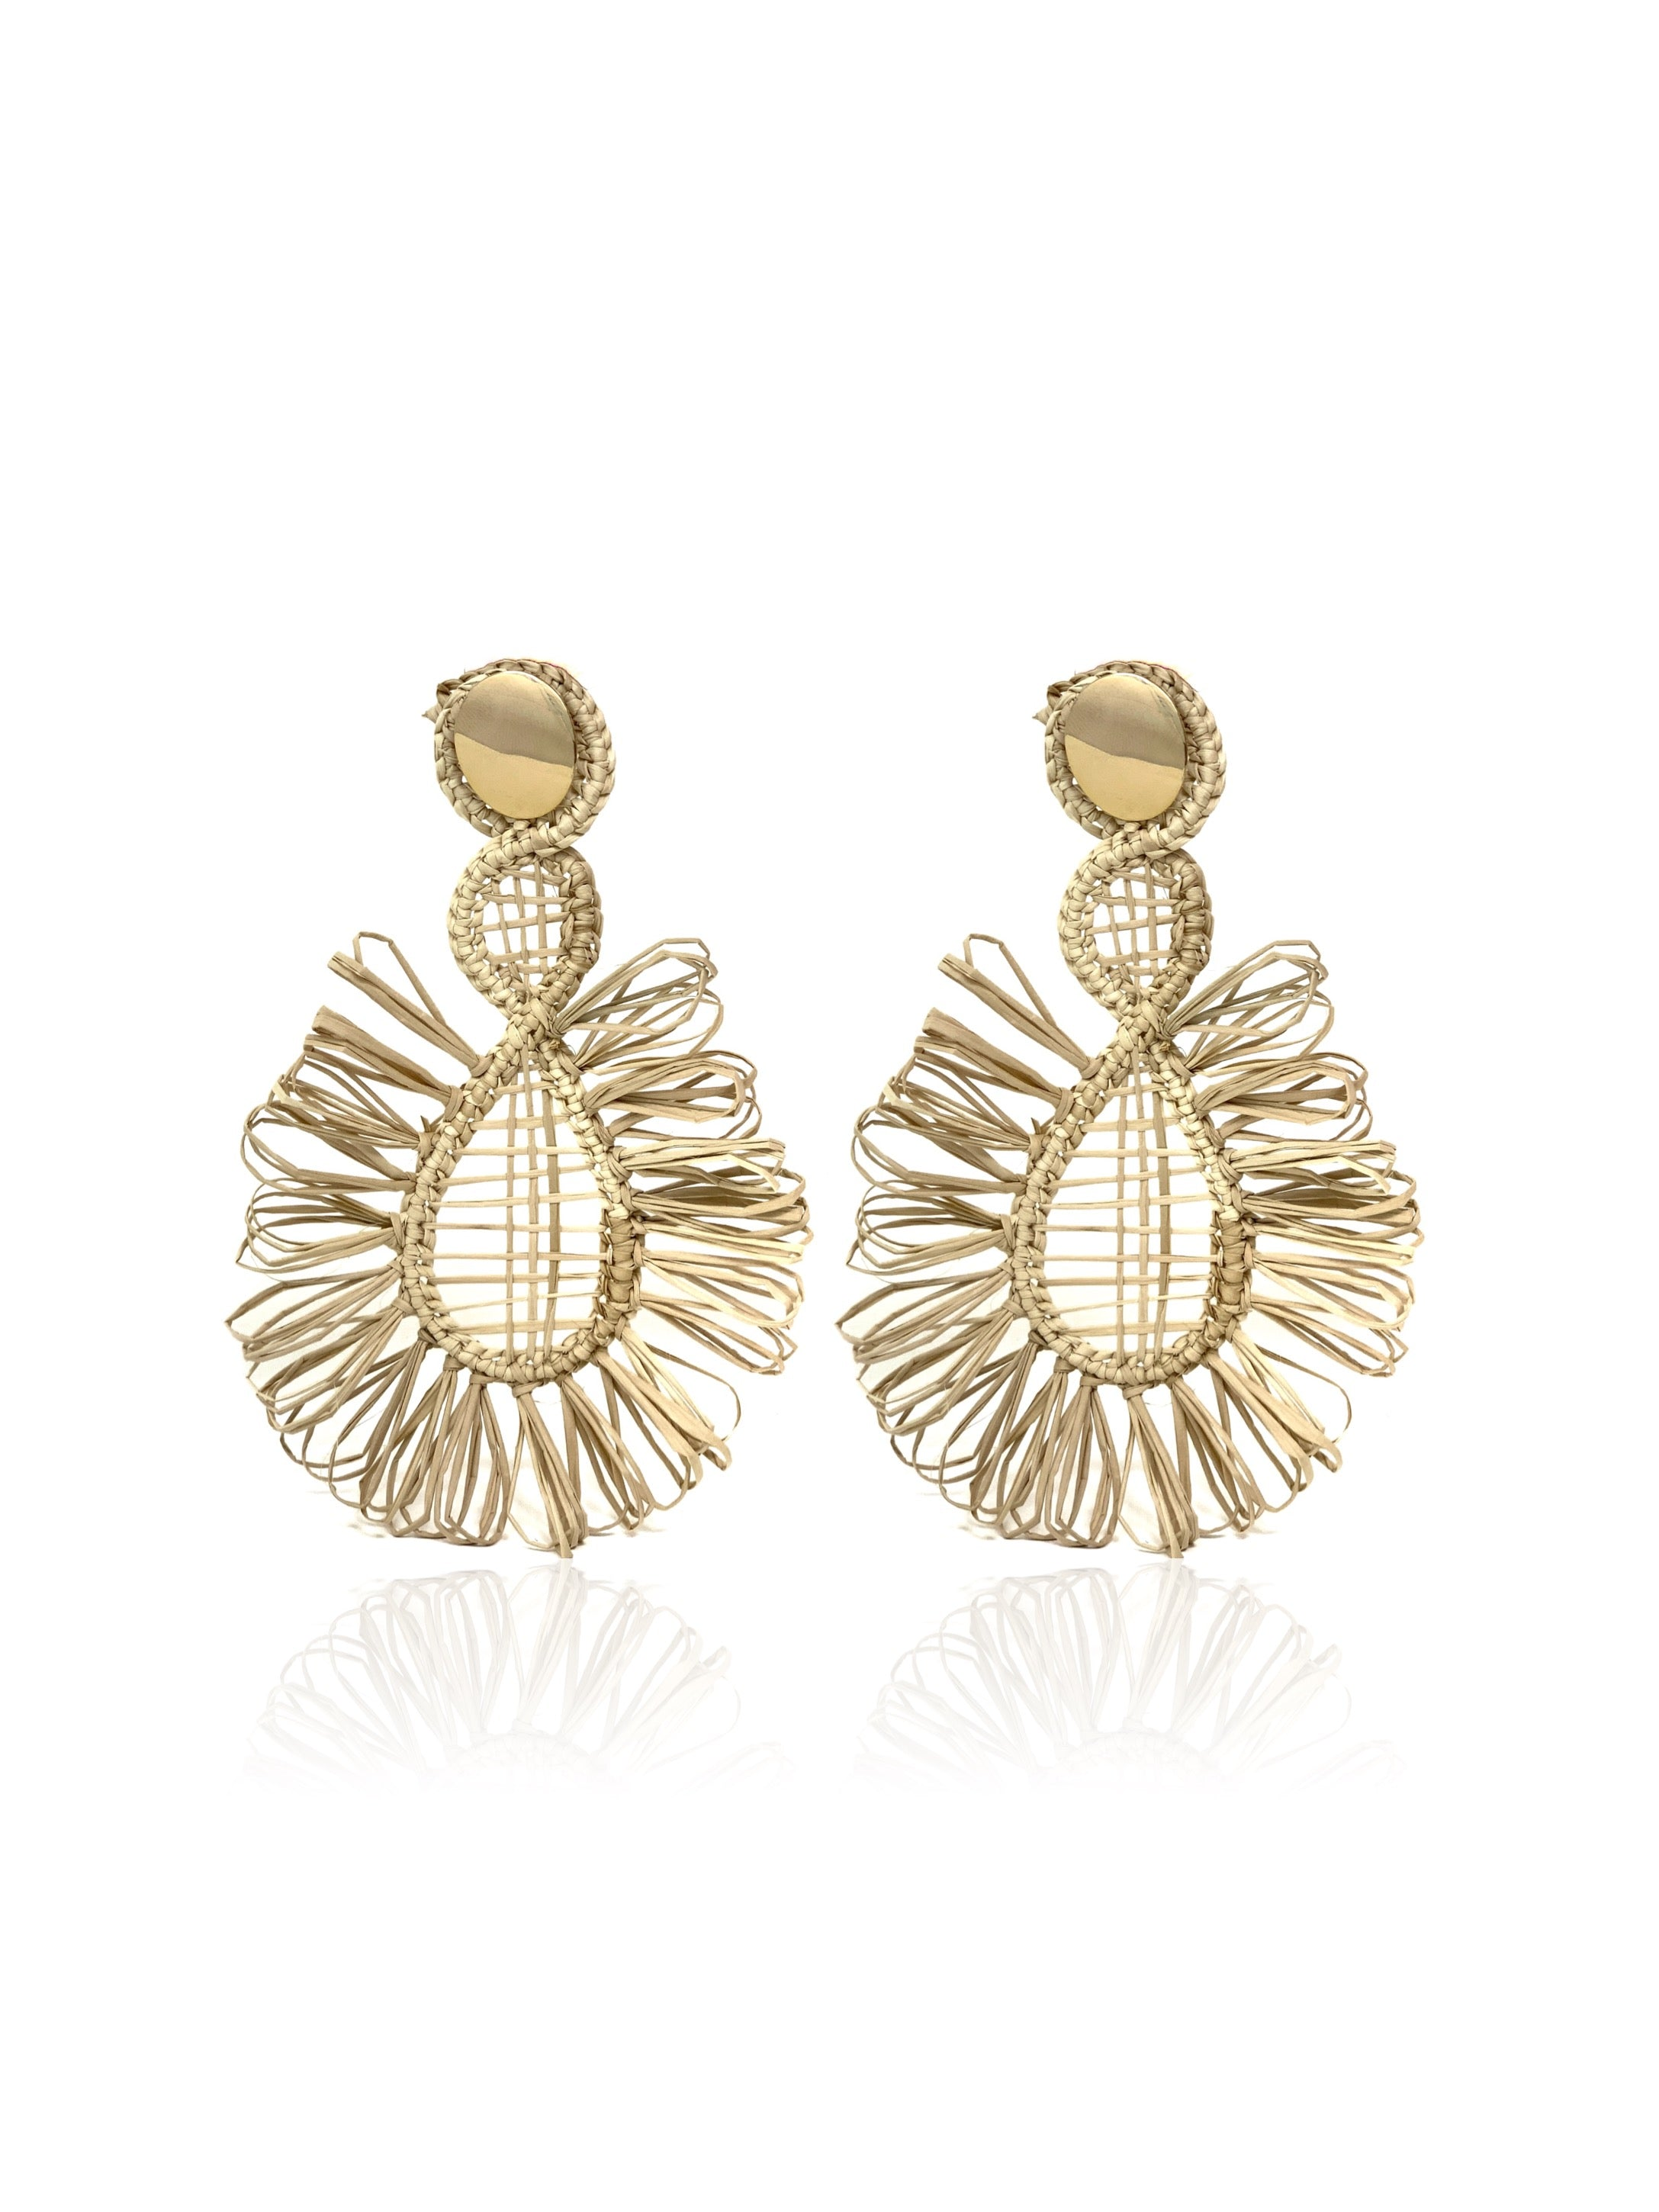 Ester earrings